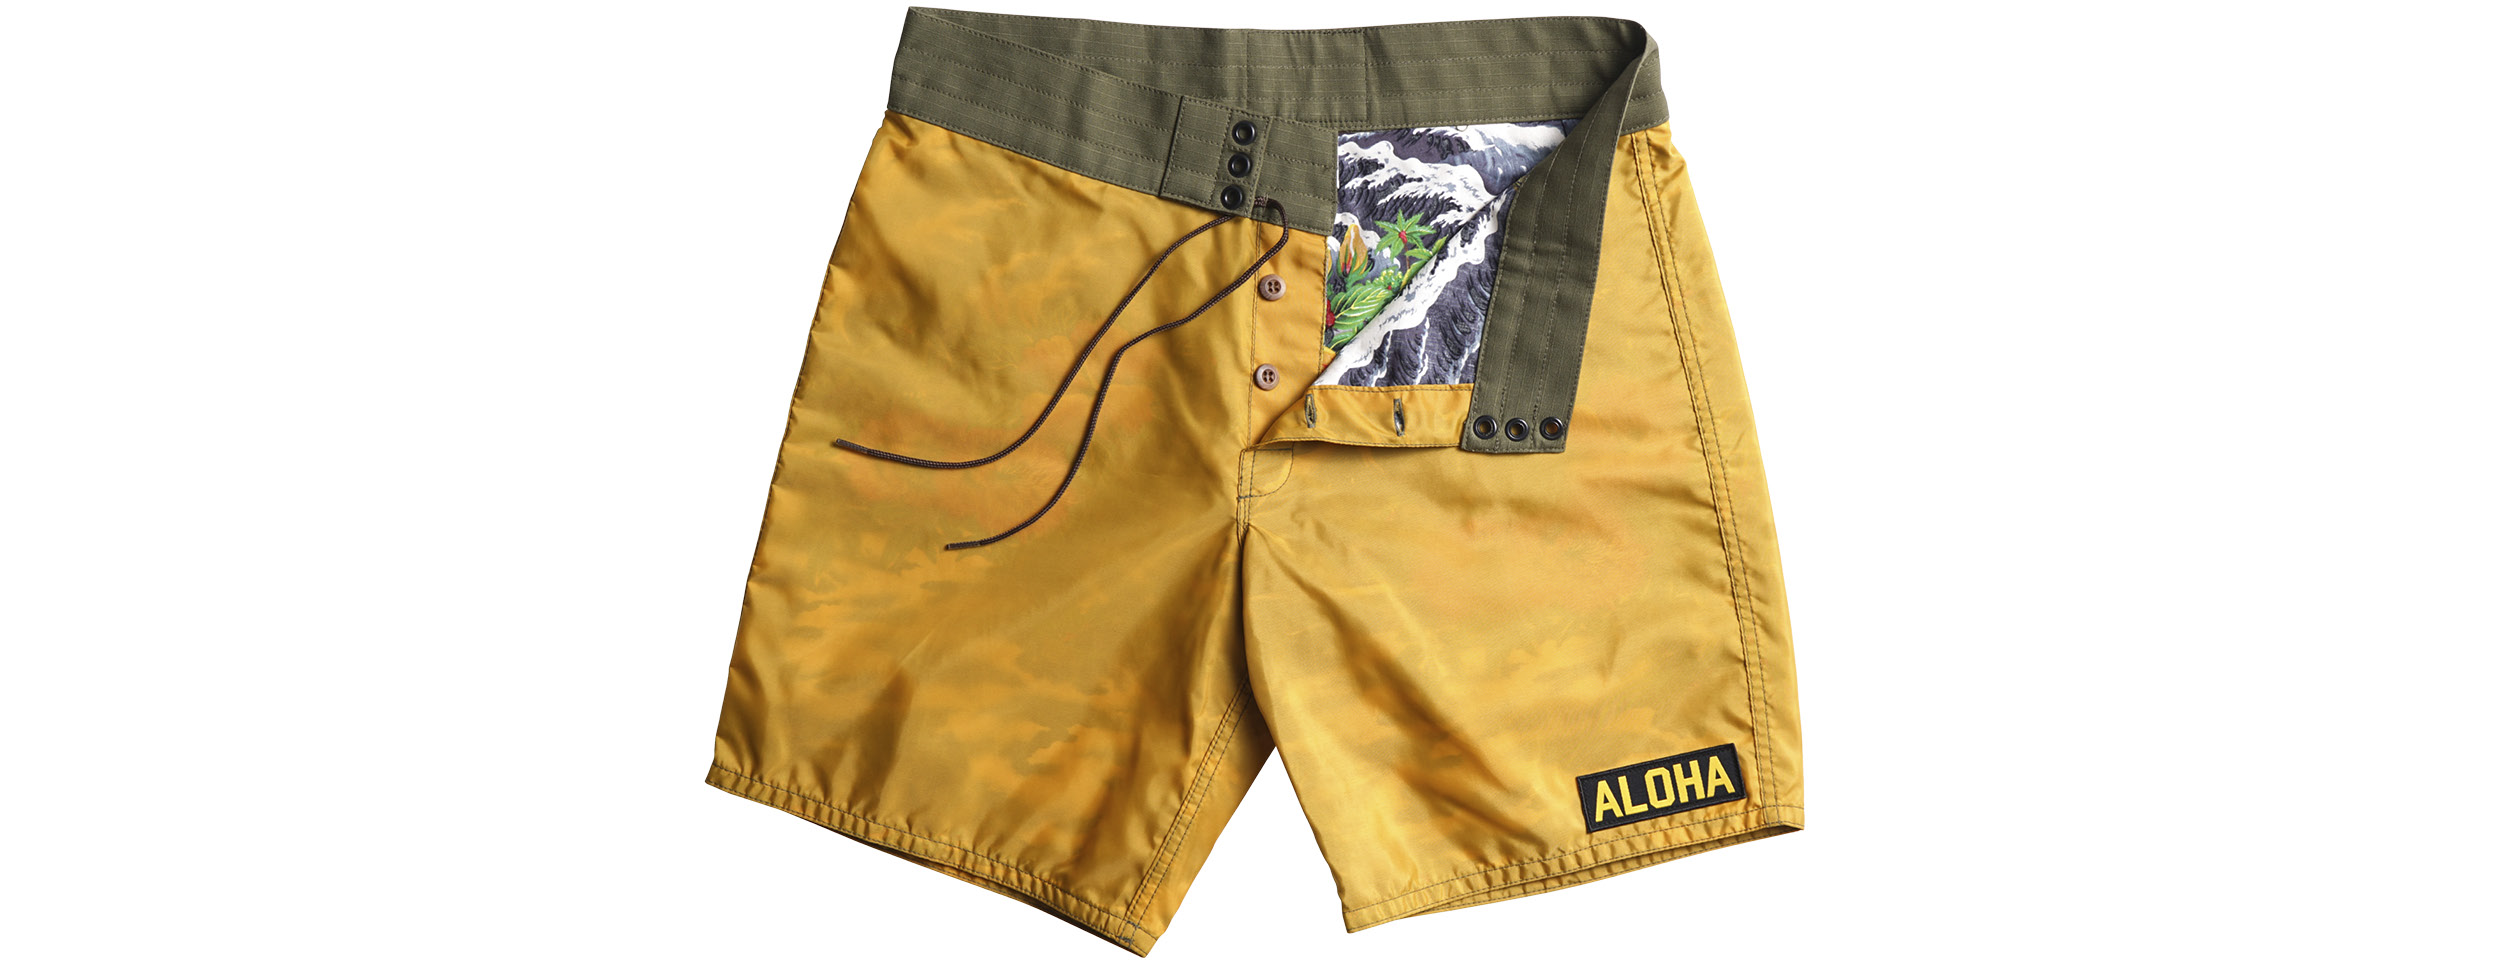 a990bbe2efd34 Boardshort Spotlight: Best Birdwell Beach Britches Boardshorts ...